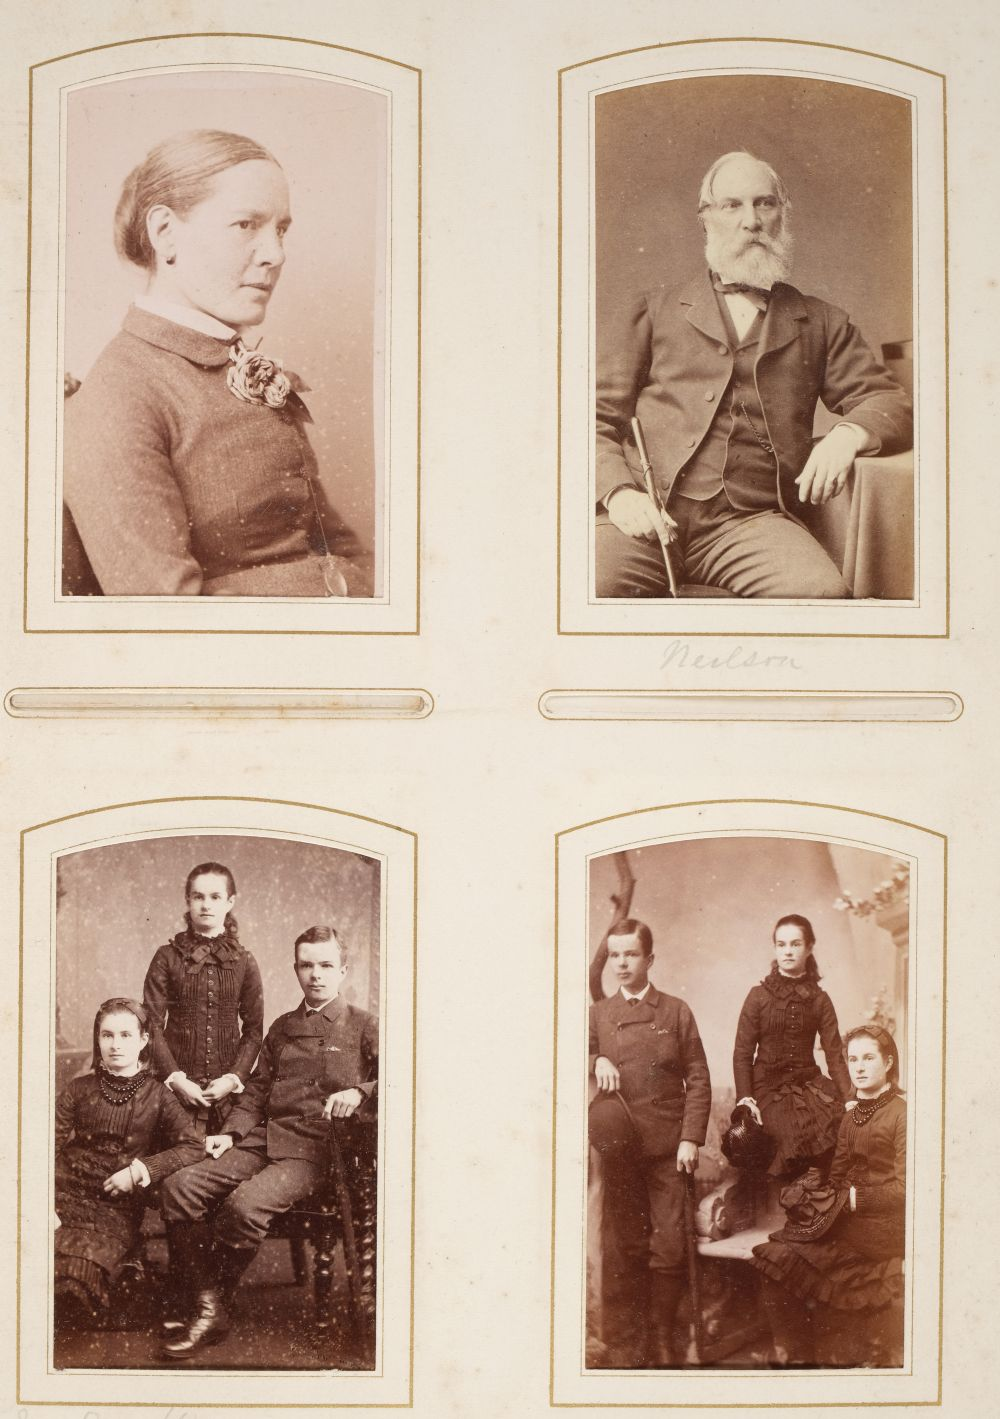 * Cartes de visite. A group of 3 albums of cartes de visite and cabinet cards - Image 22 of 26